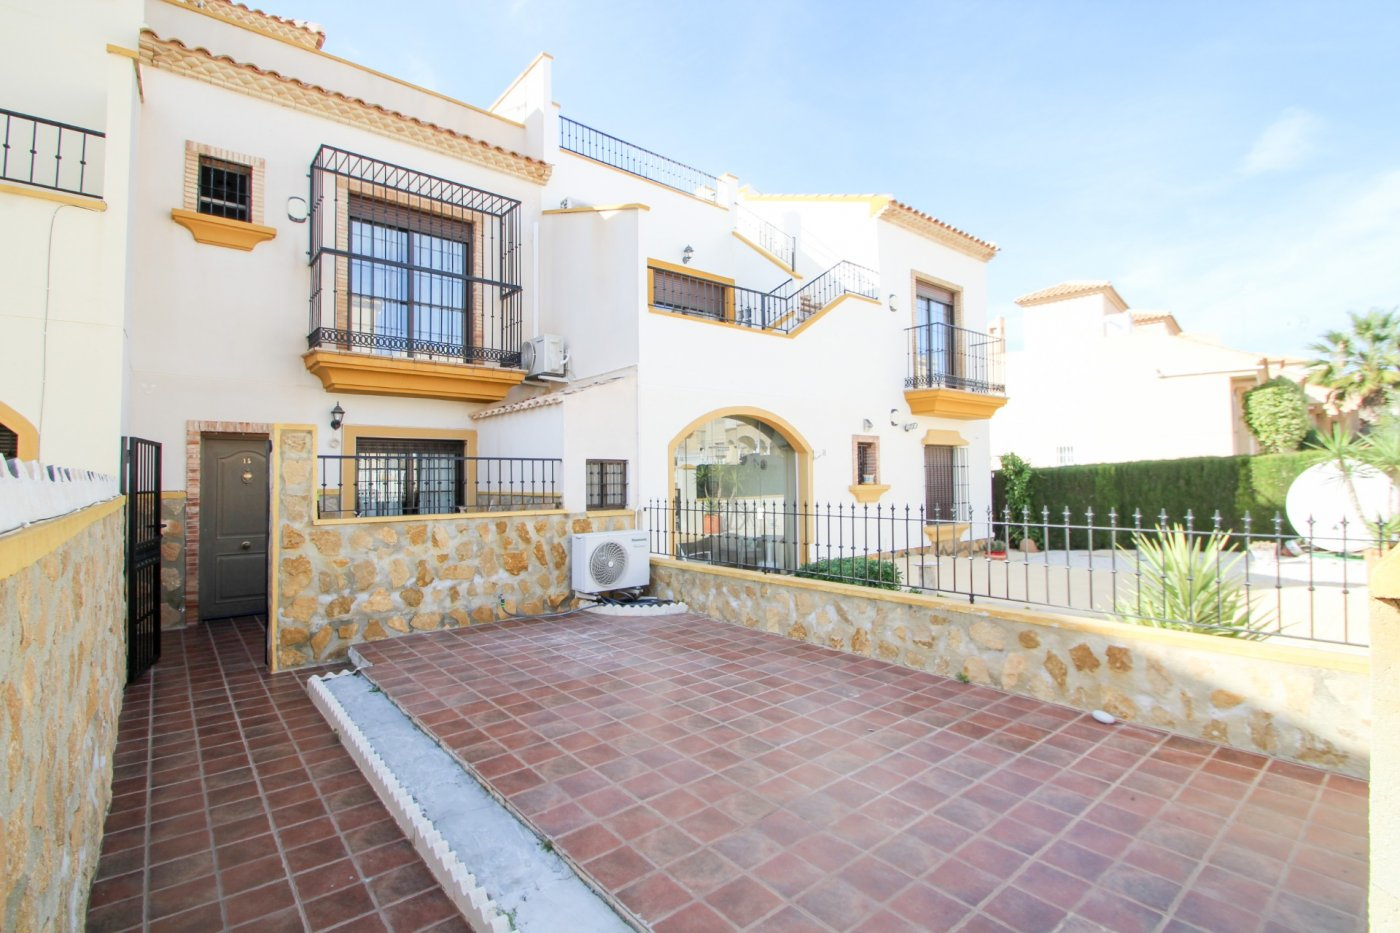 2 Bedrooms Bungalow Close to Villamartin Golf course-El galan